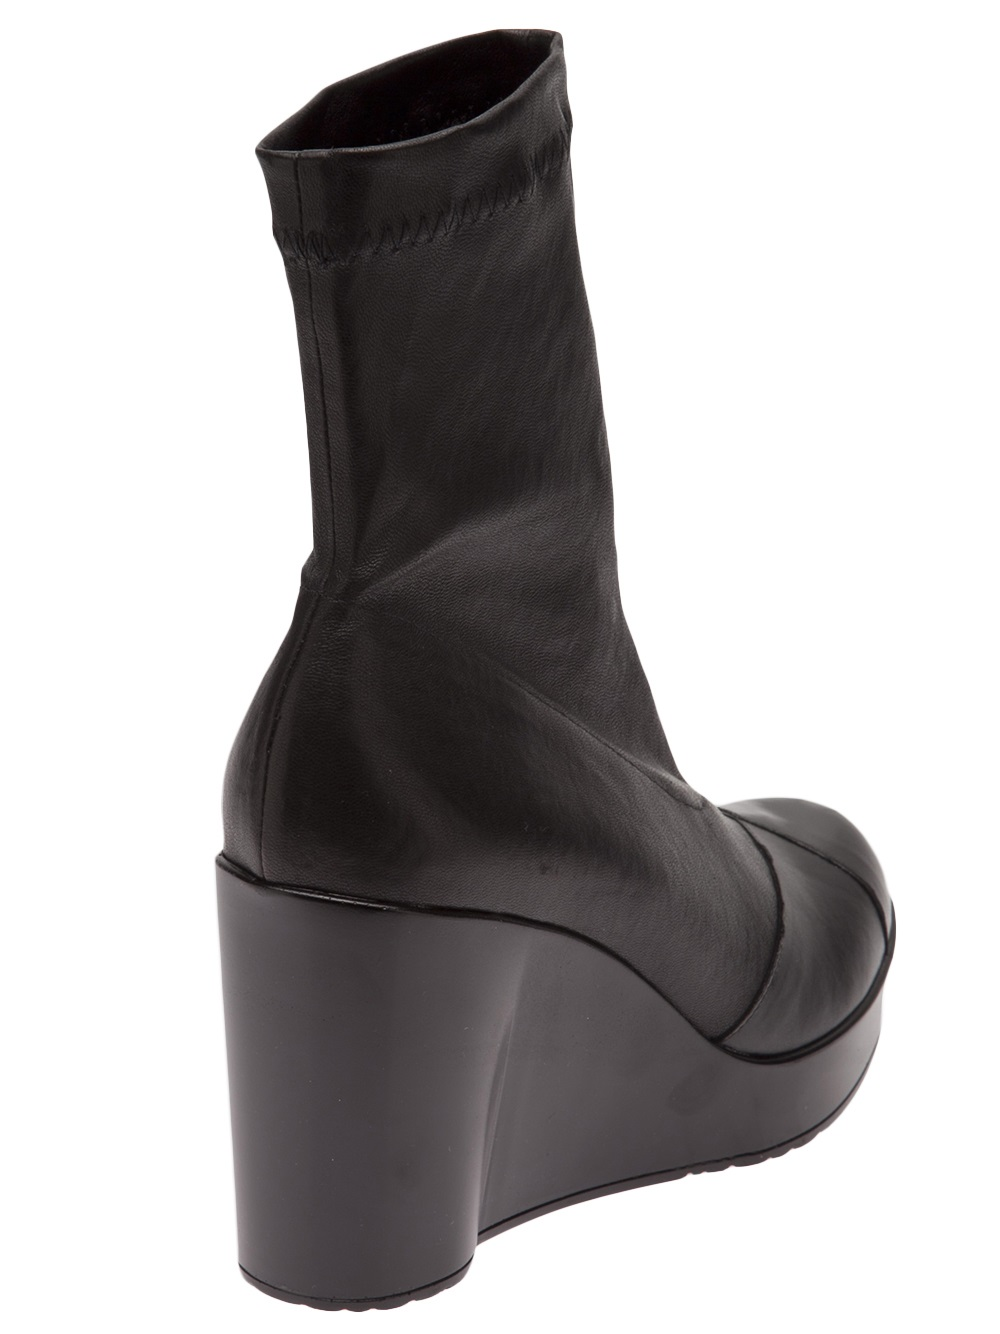 8ba34cd615c1 Lyst - Robert Clergerie Cendre Wedge Boot in Black